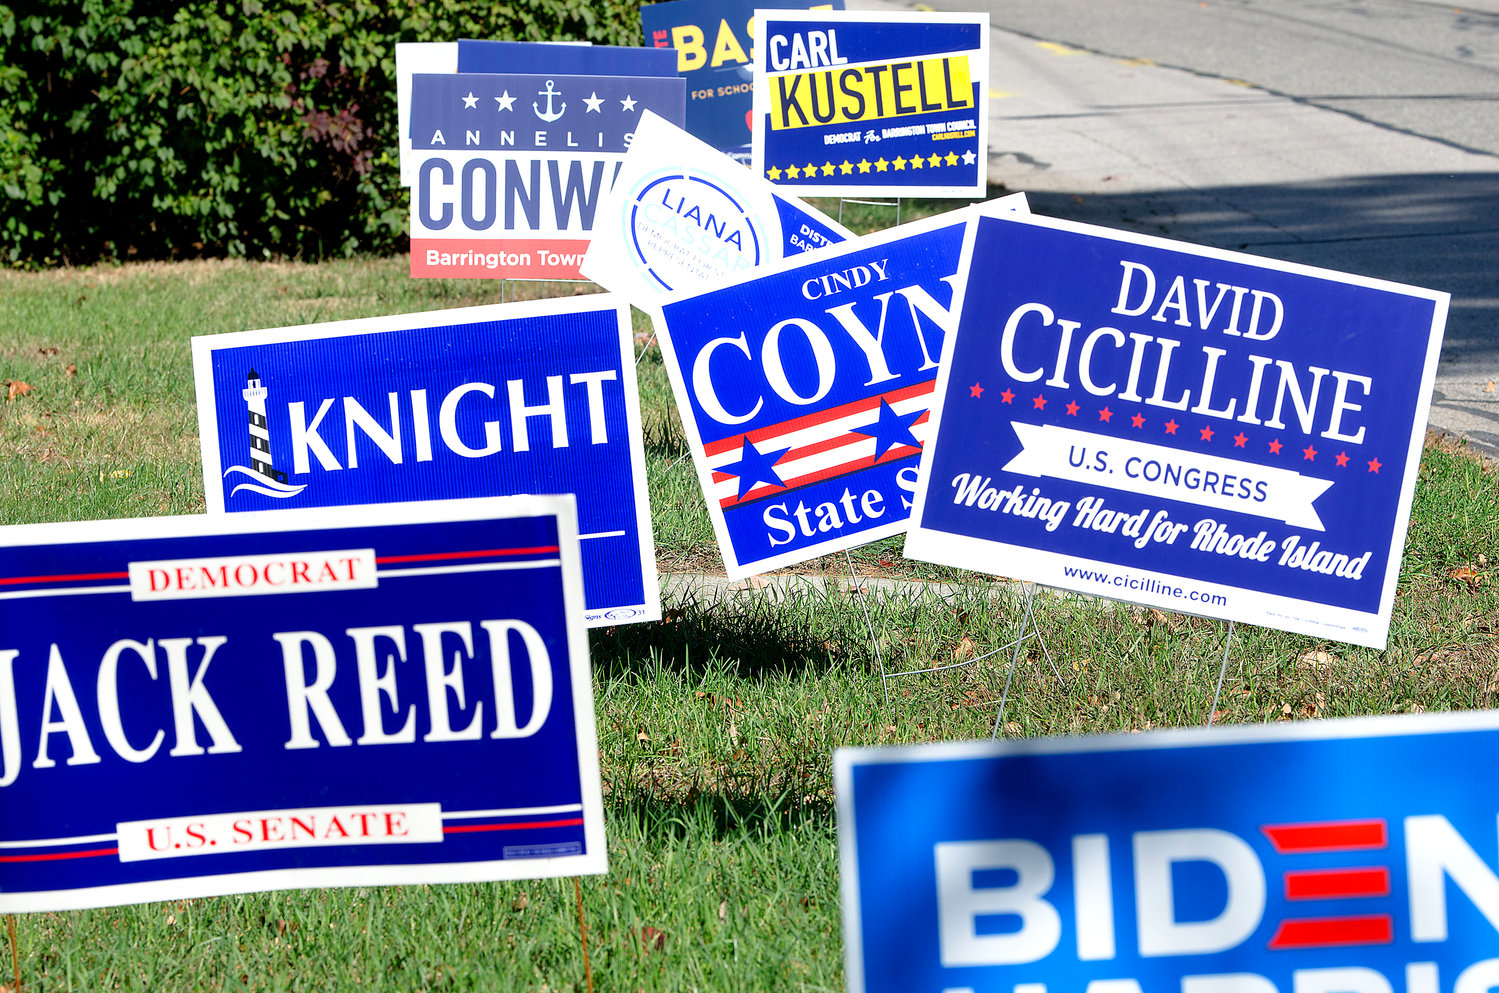 In years past, Barrington's Republican and Democratic town committees held an agreement banning the use of political lawn signs. That agreement fell by the side of the road a few years ago.